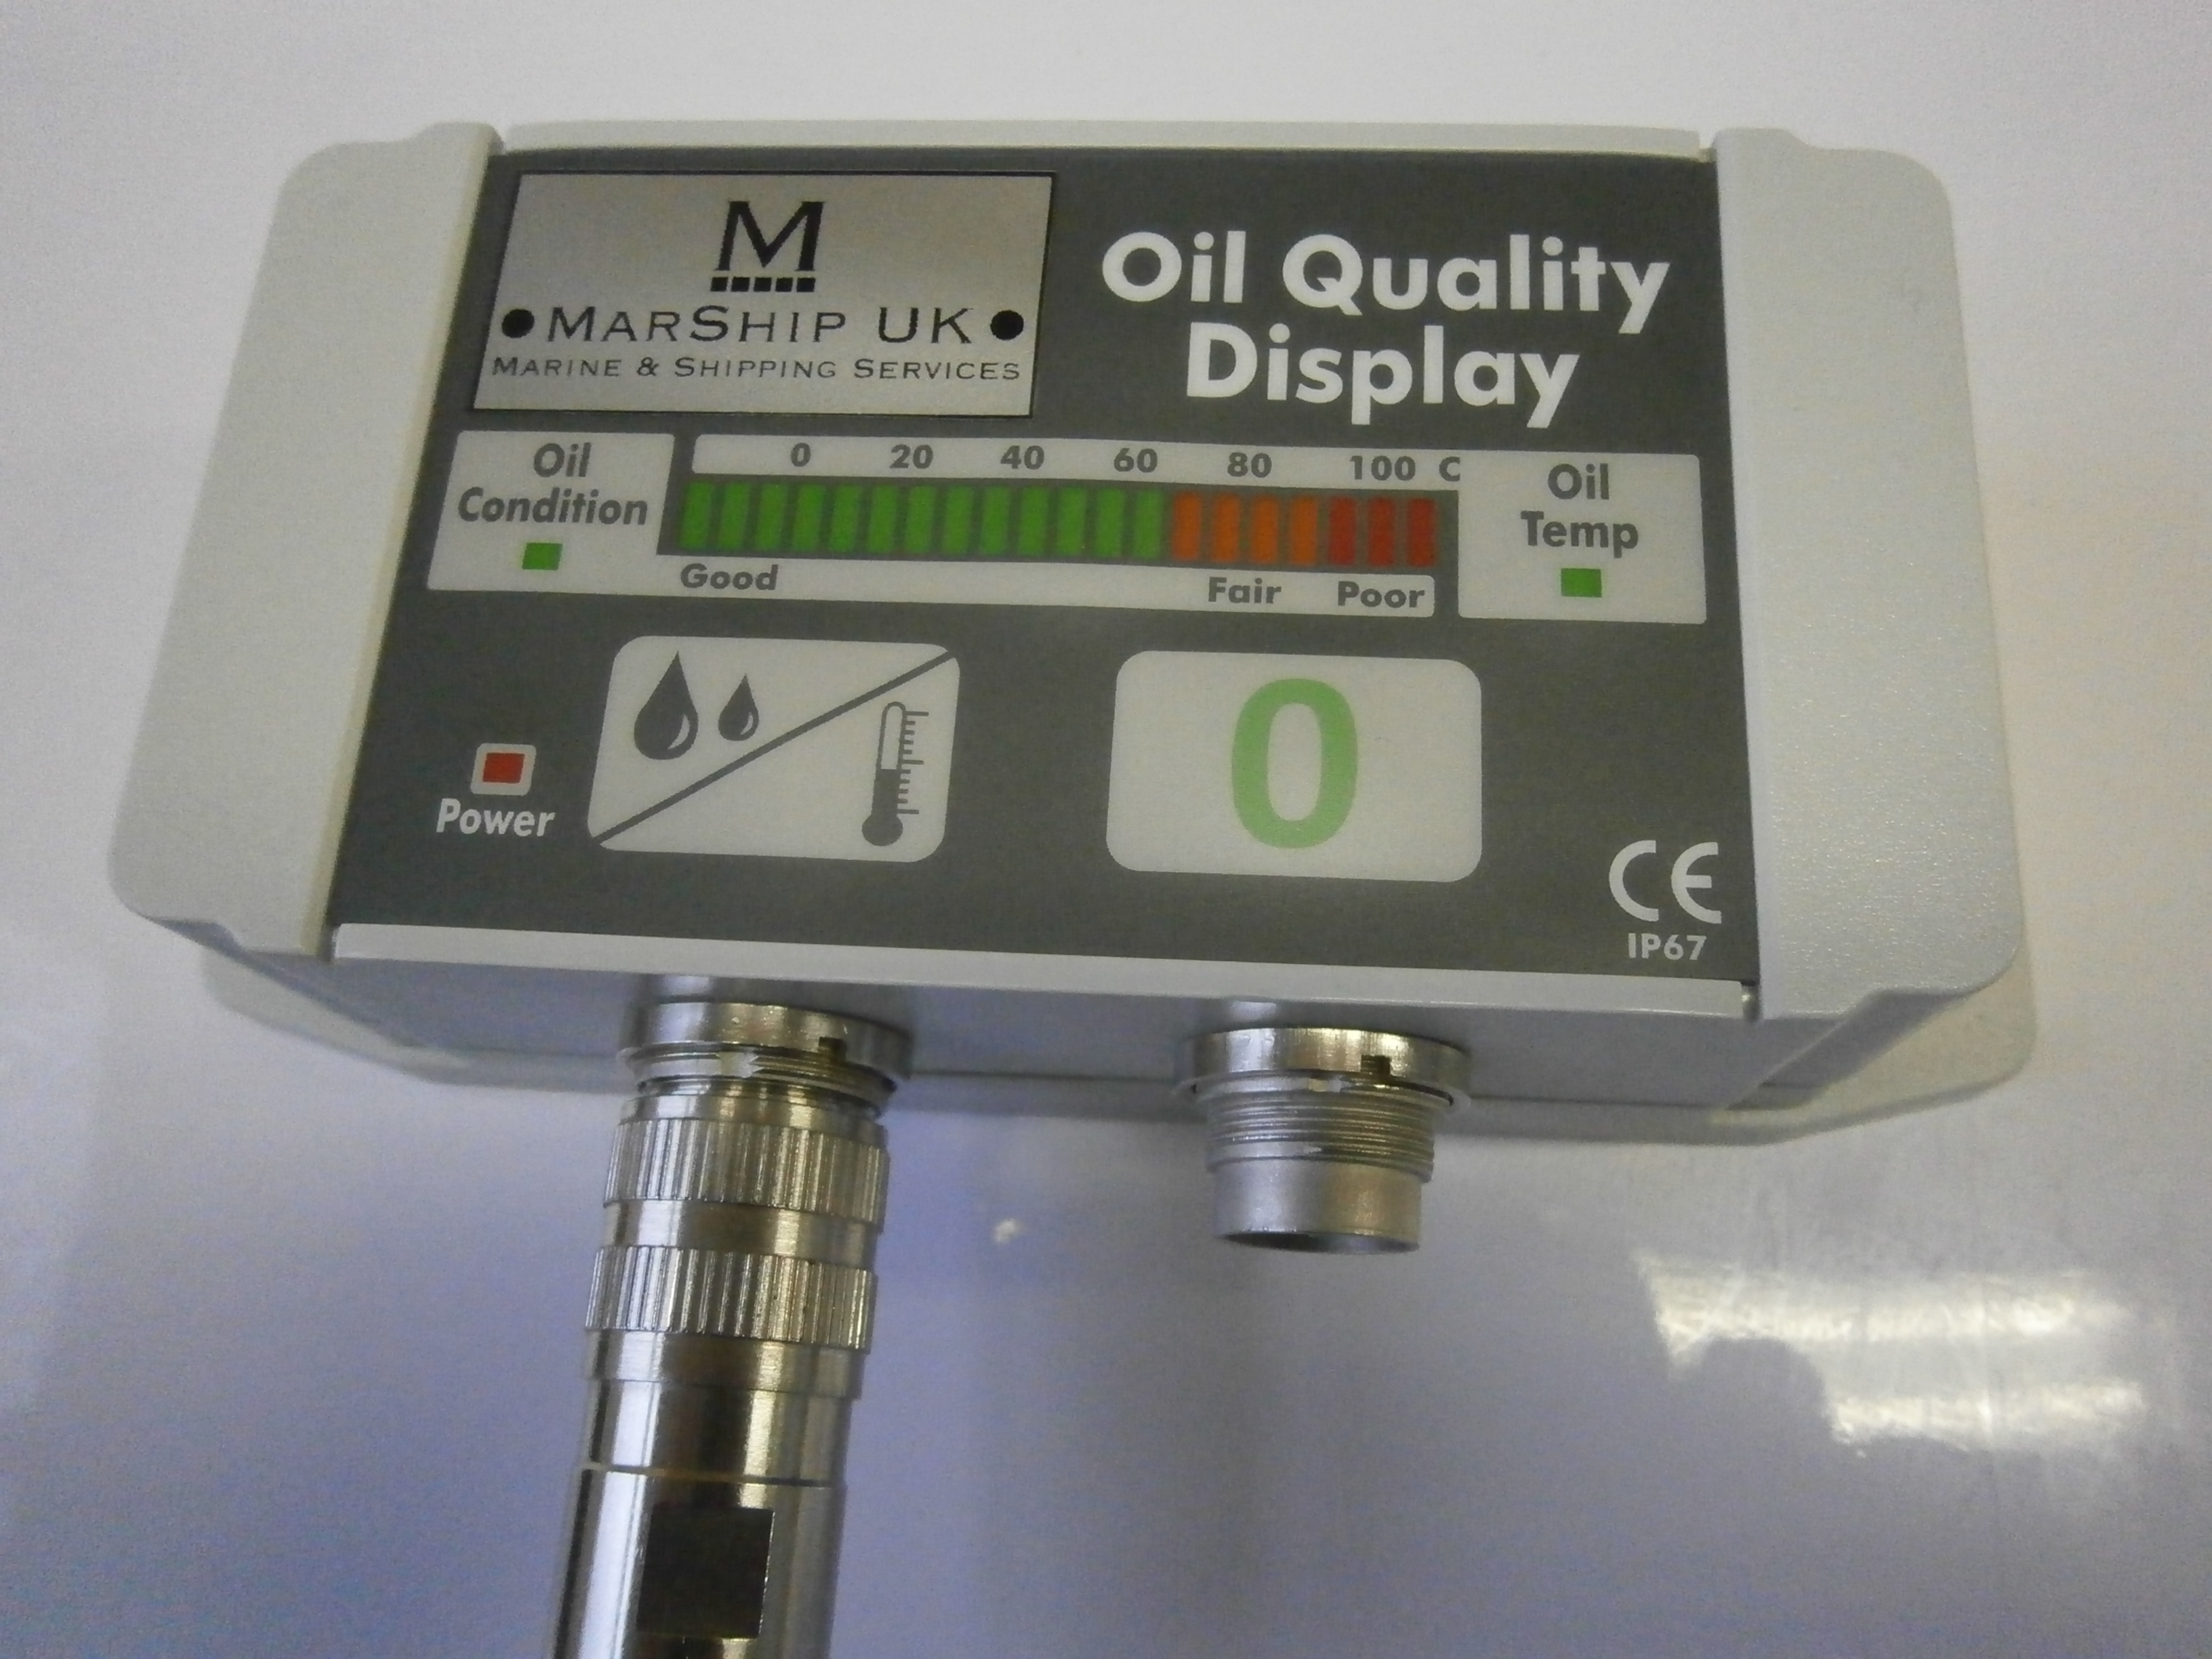 display shoeing oil quality